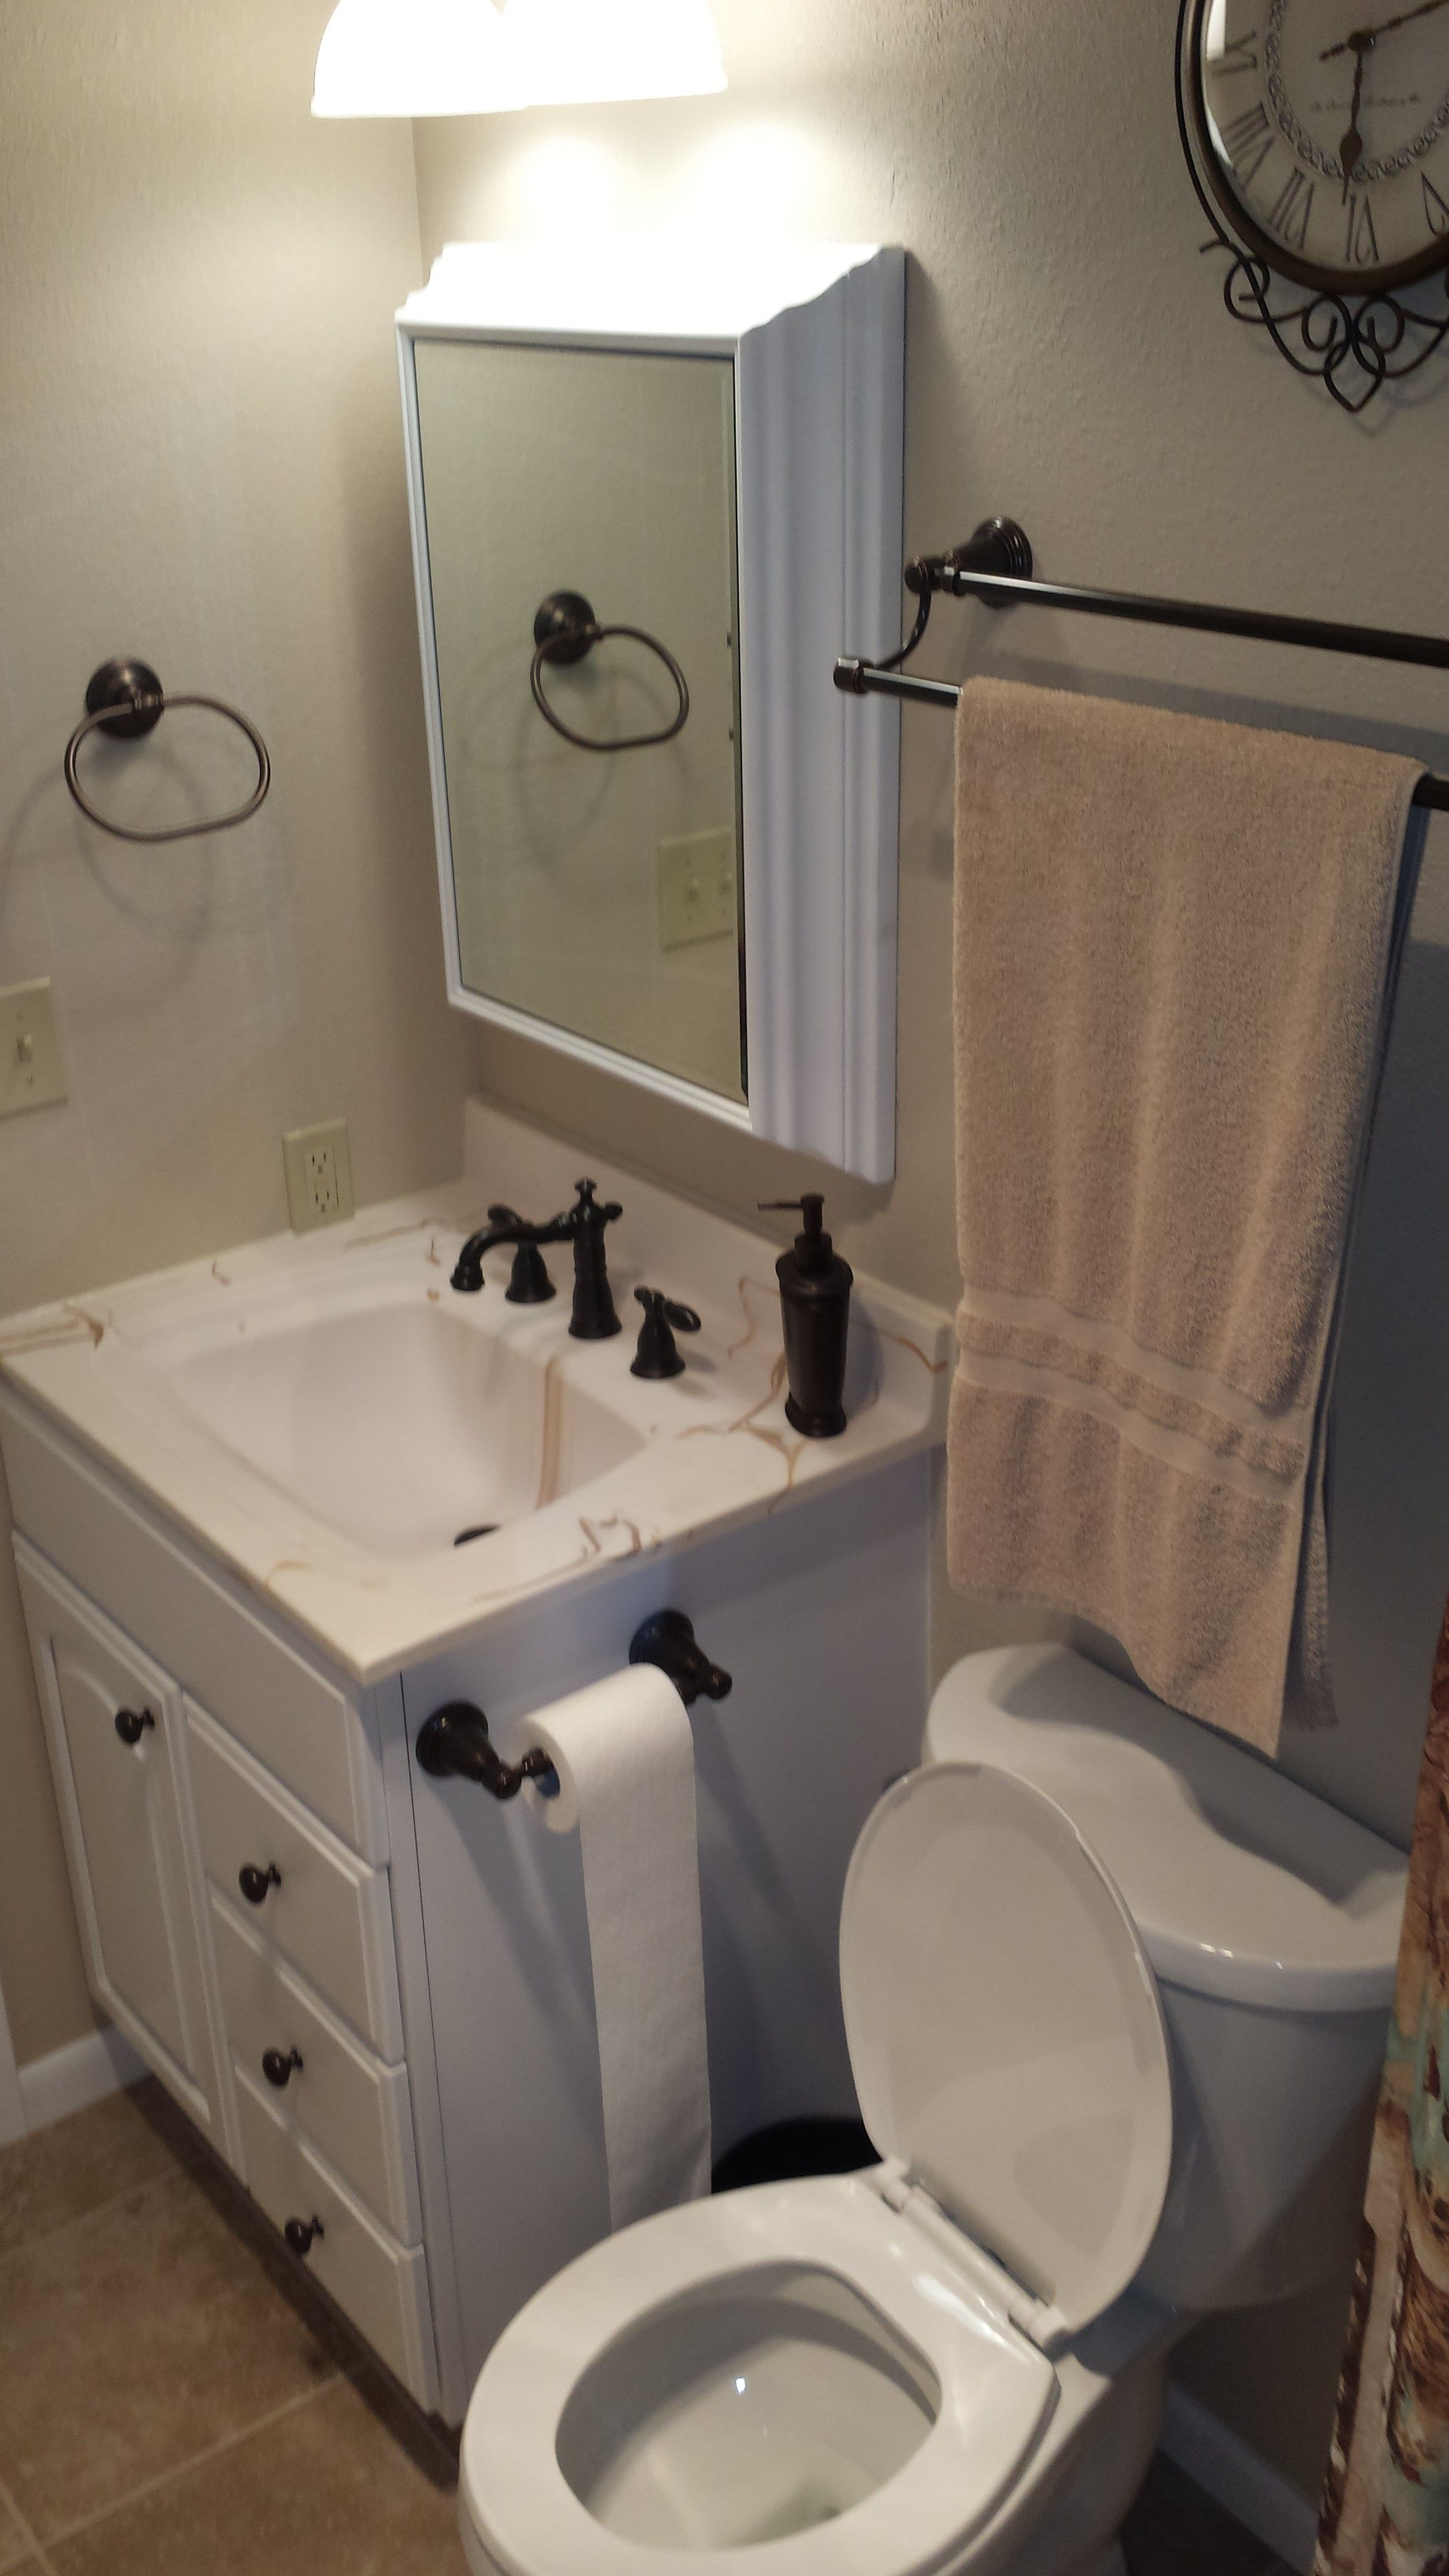 Bathroom Remodel Ideas Httpwwwhagenfirstcomresidential - Residential bathroom remodeling